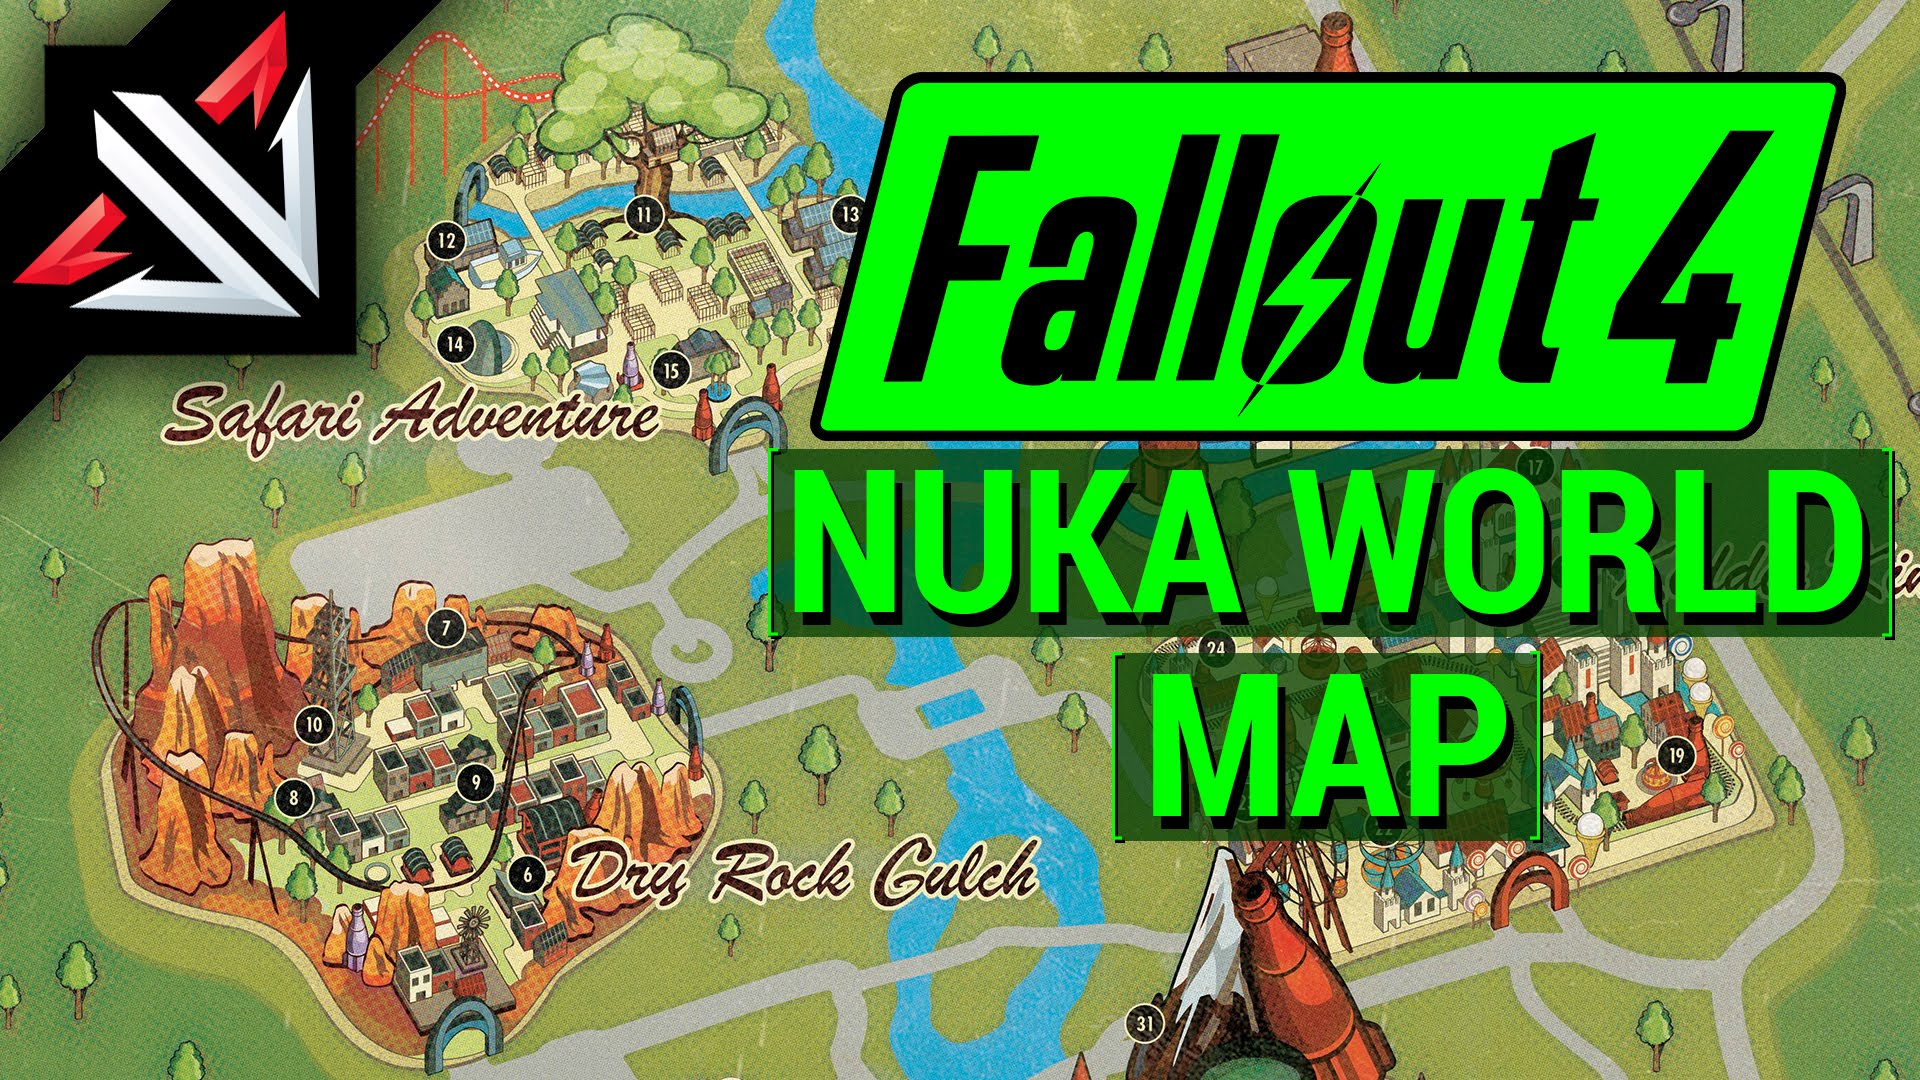 fallout 4 nuka world maps going out 2016